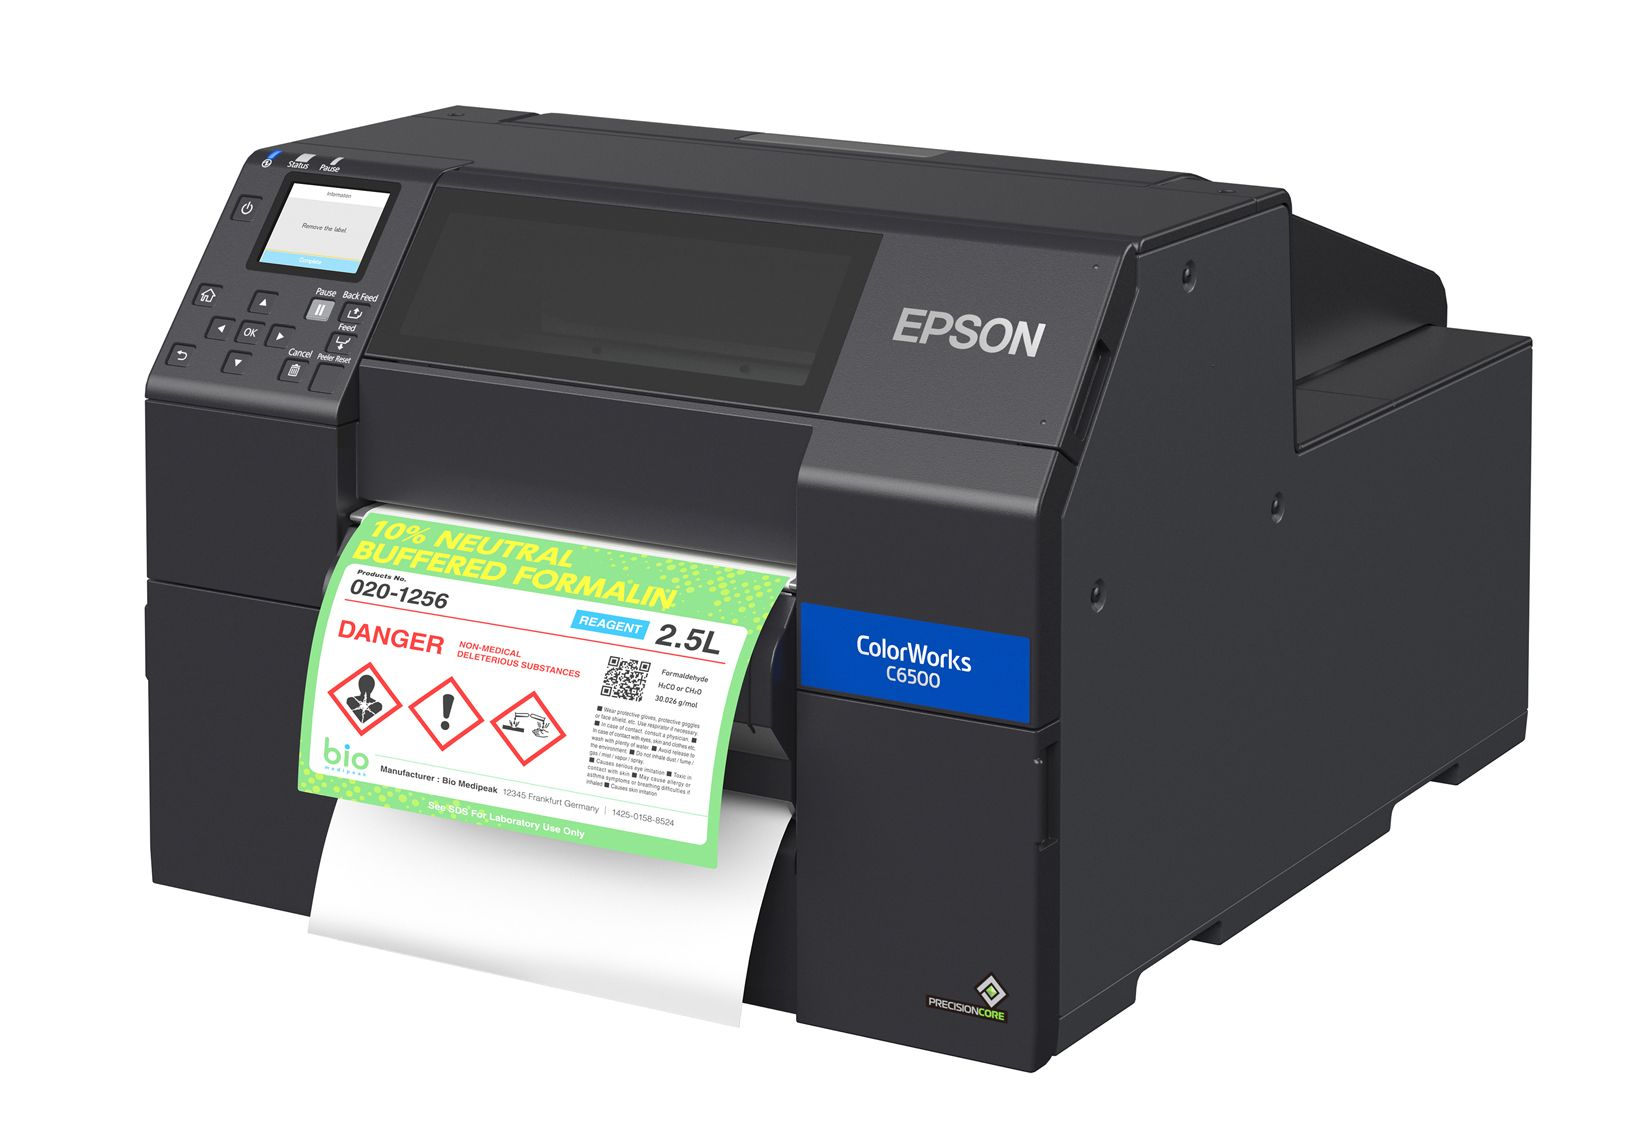 Epson ColorWorks CW-6500P color label printer with peel and present